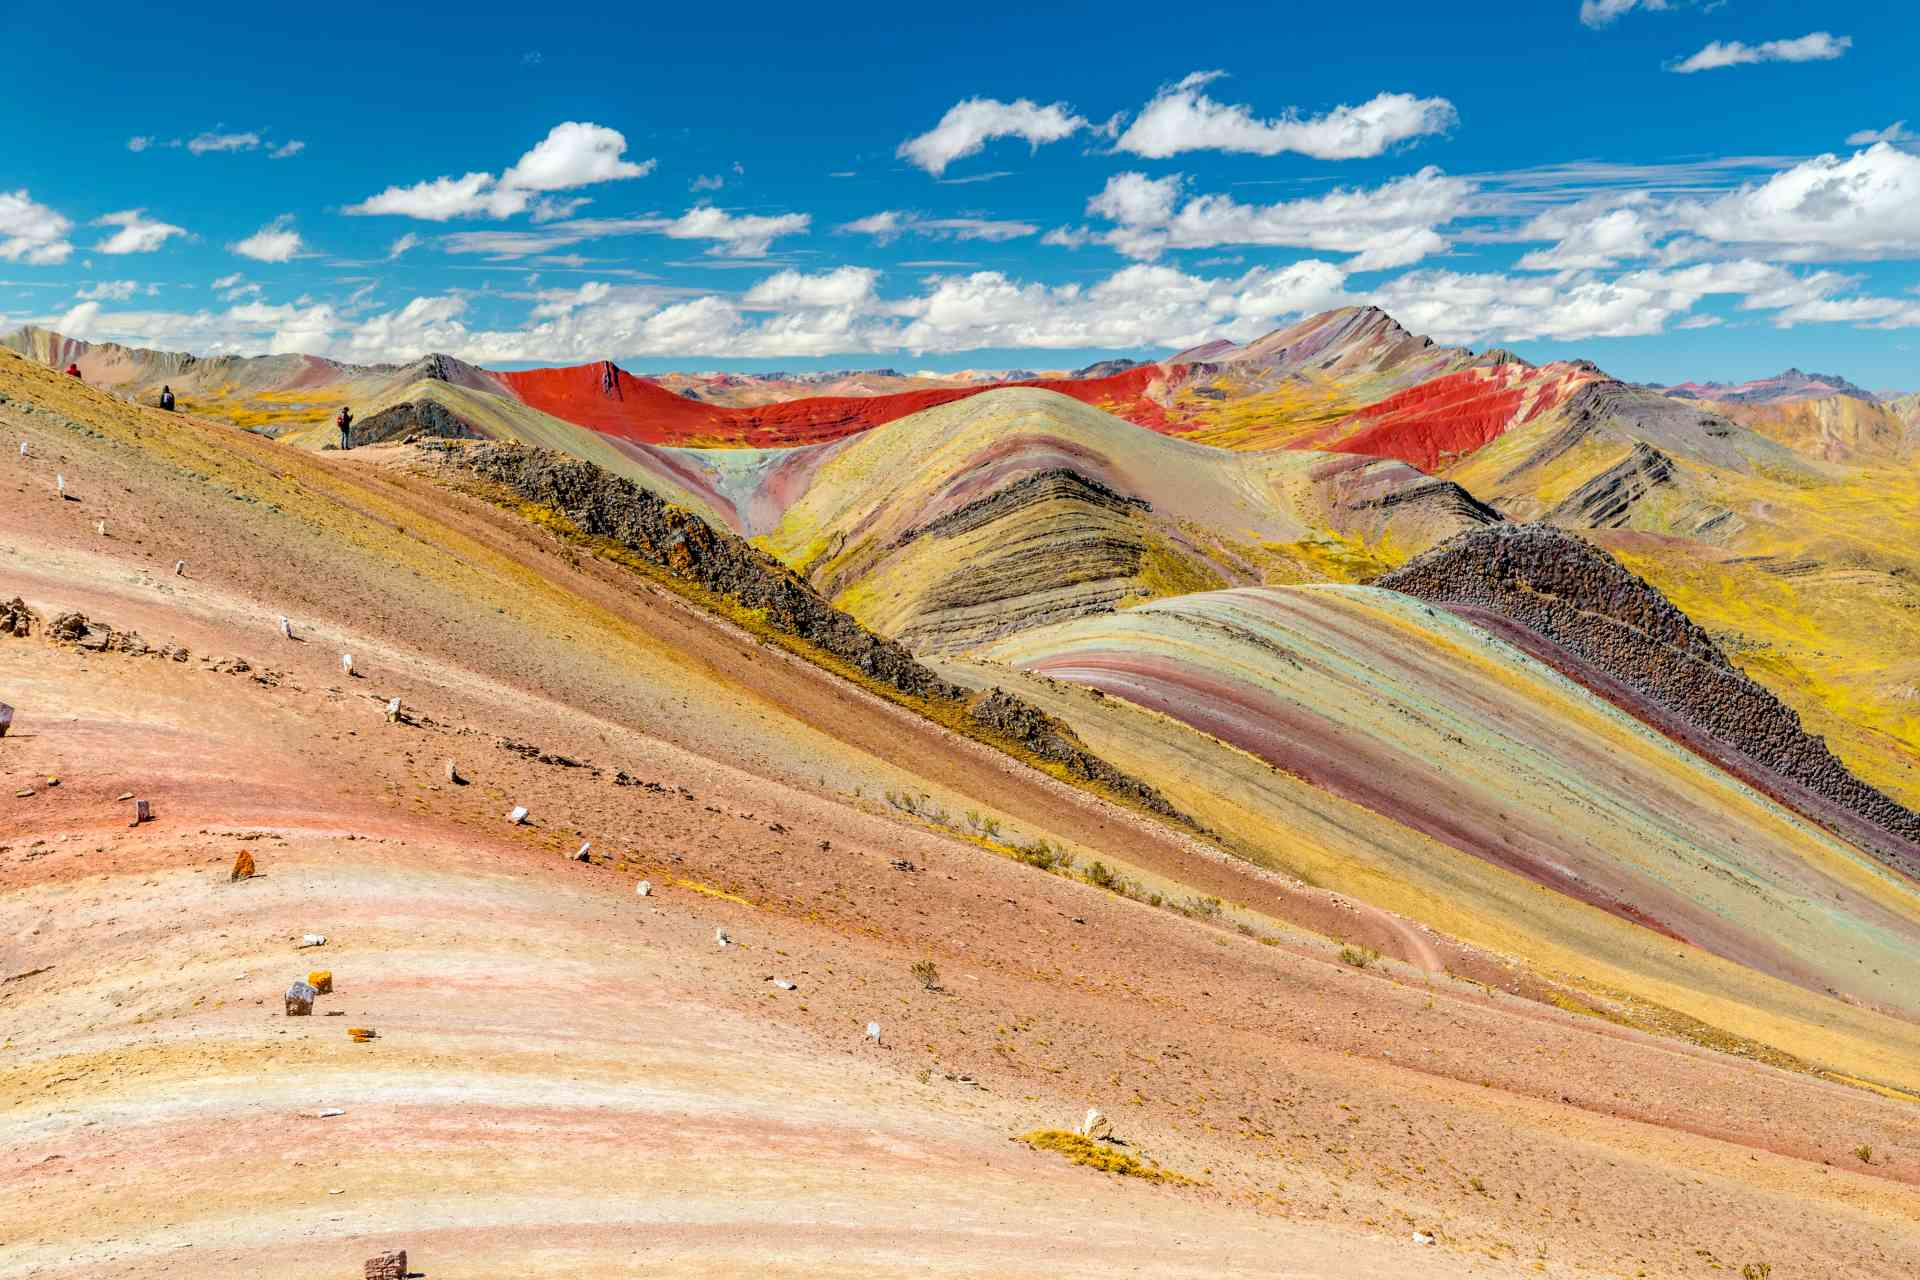 Palcoyo Rainbow Mountain, Peru by Adobe Stock